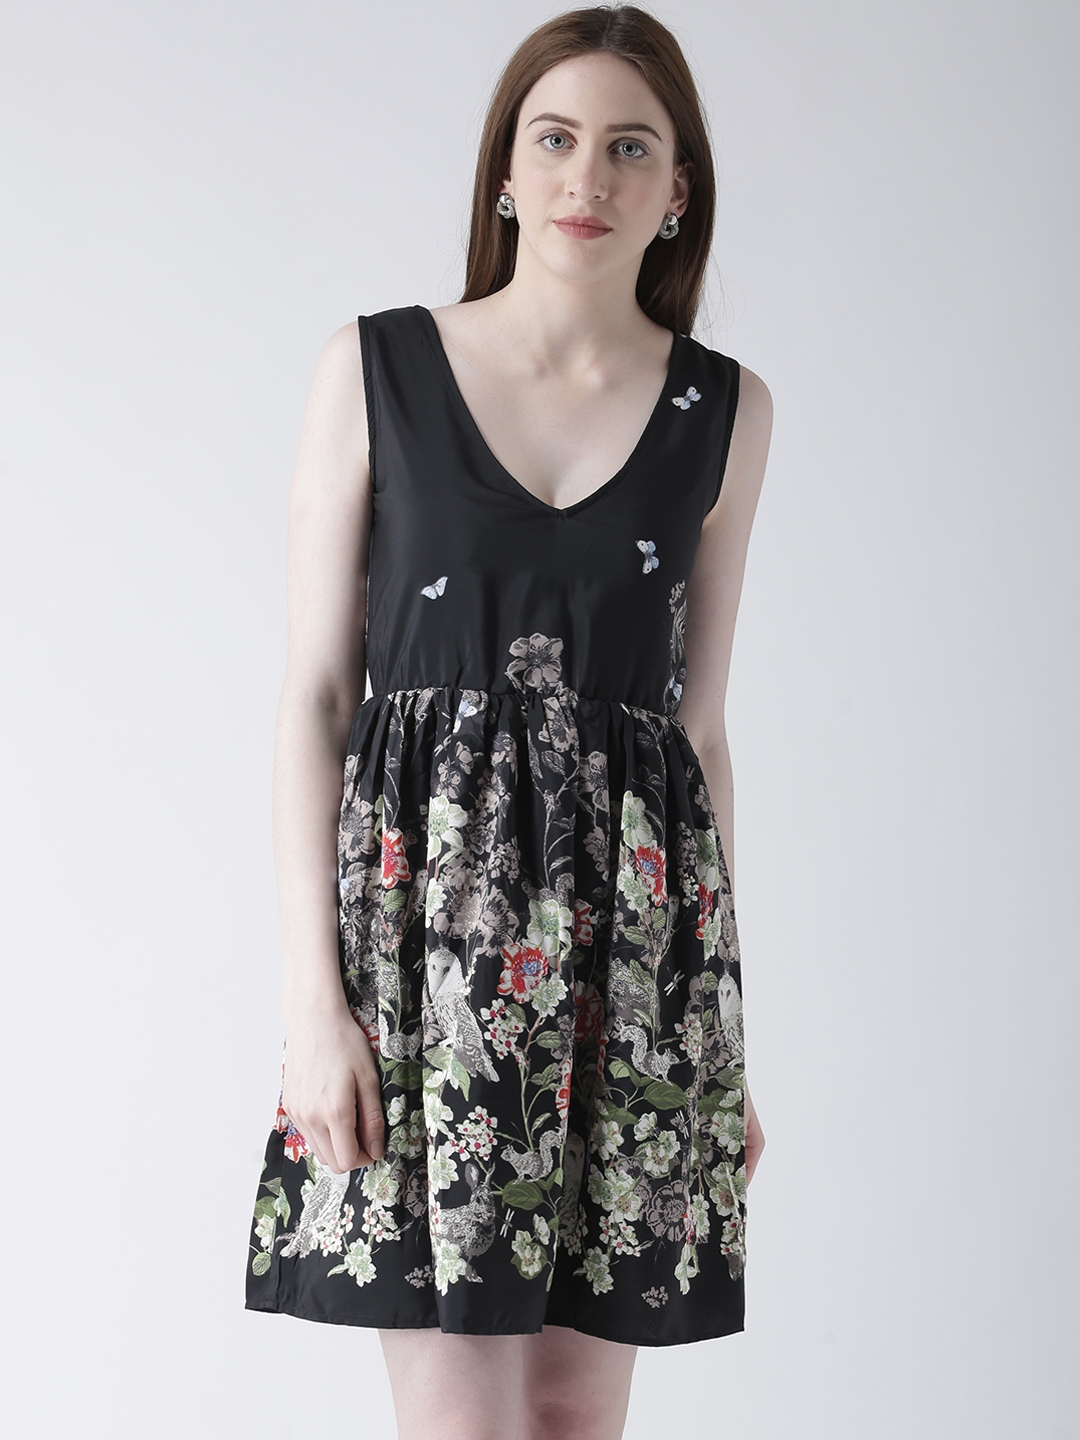 The Vanca Women Black Printed Fit and Flare Dress